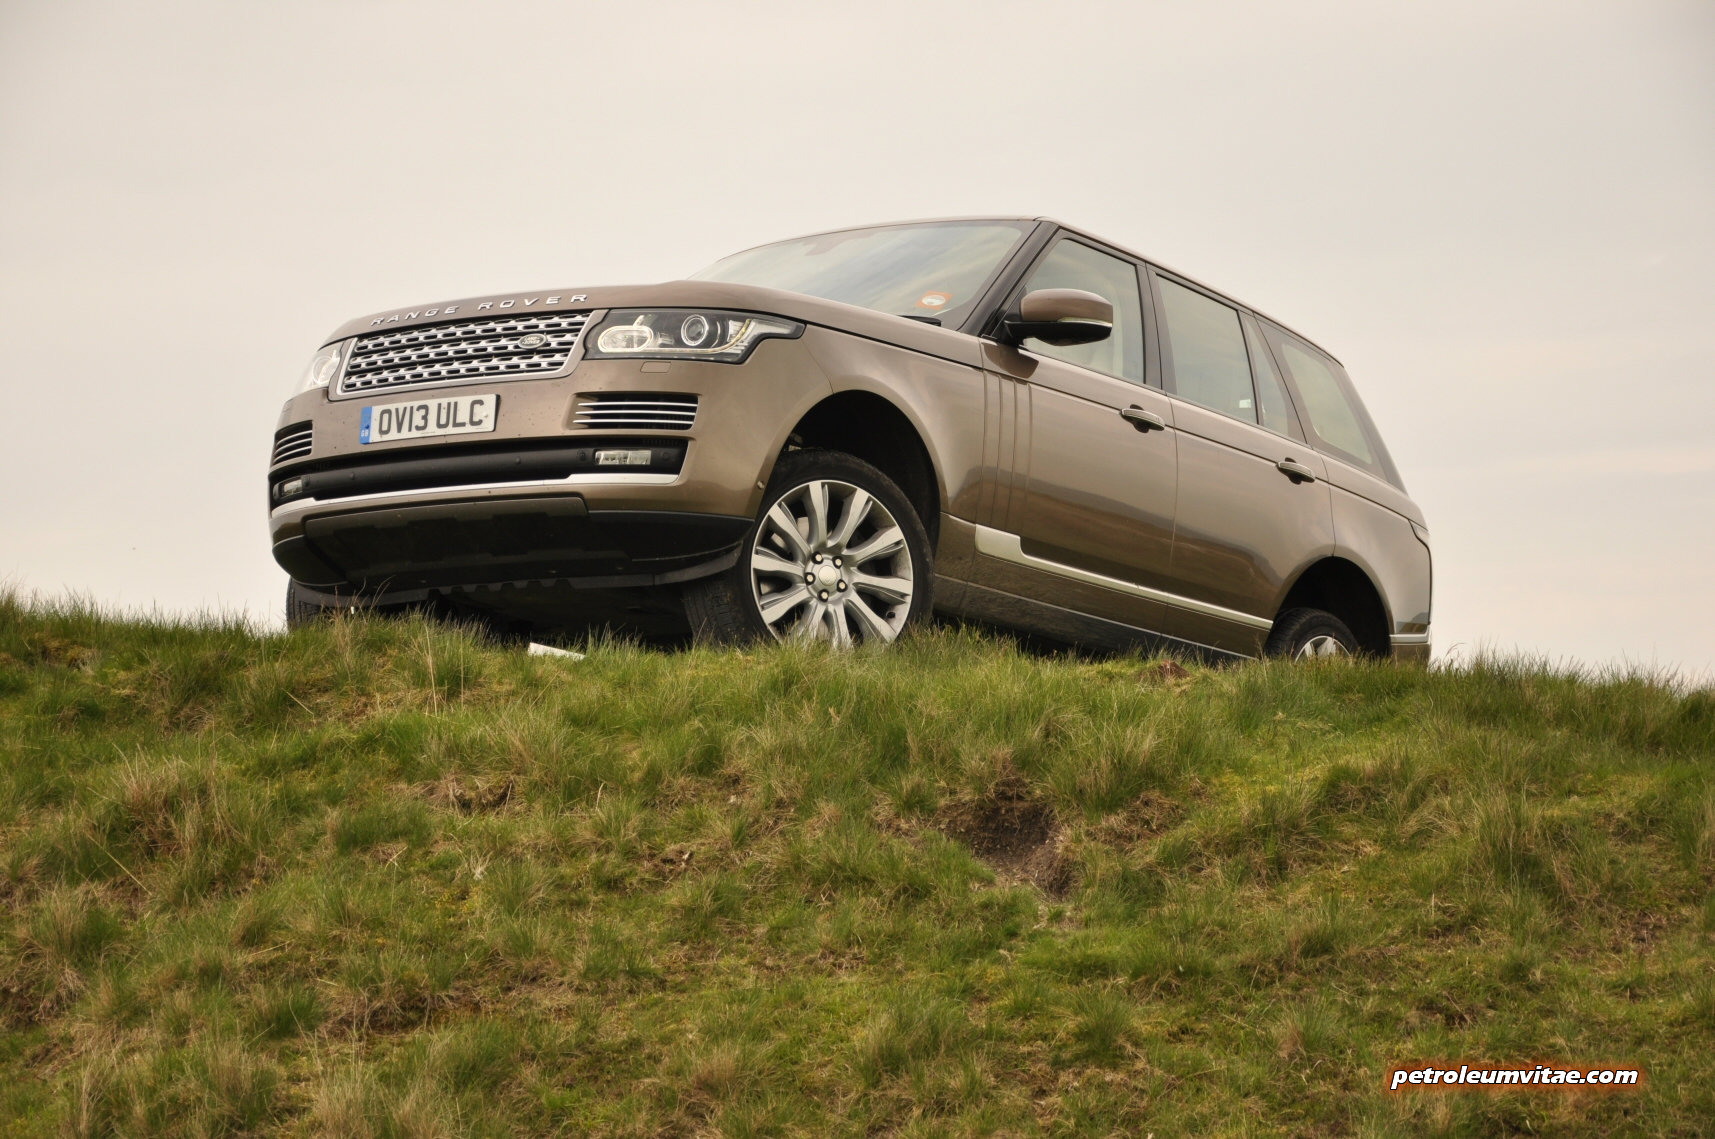 One day. Six hundred and fifty miles. A Range Rover SDV8 ...